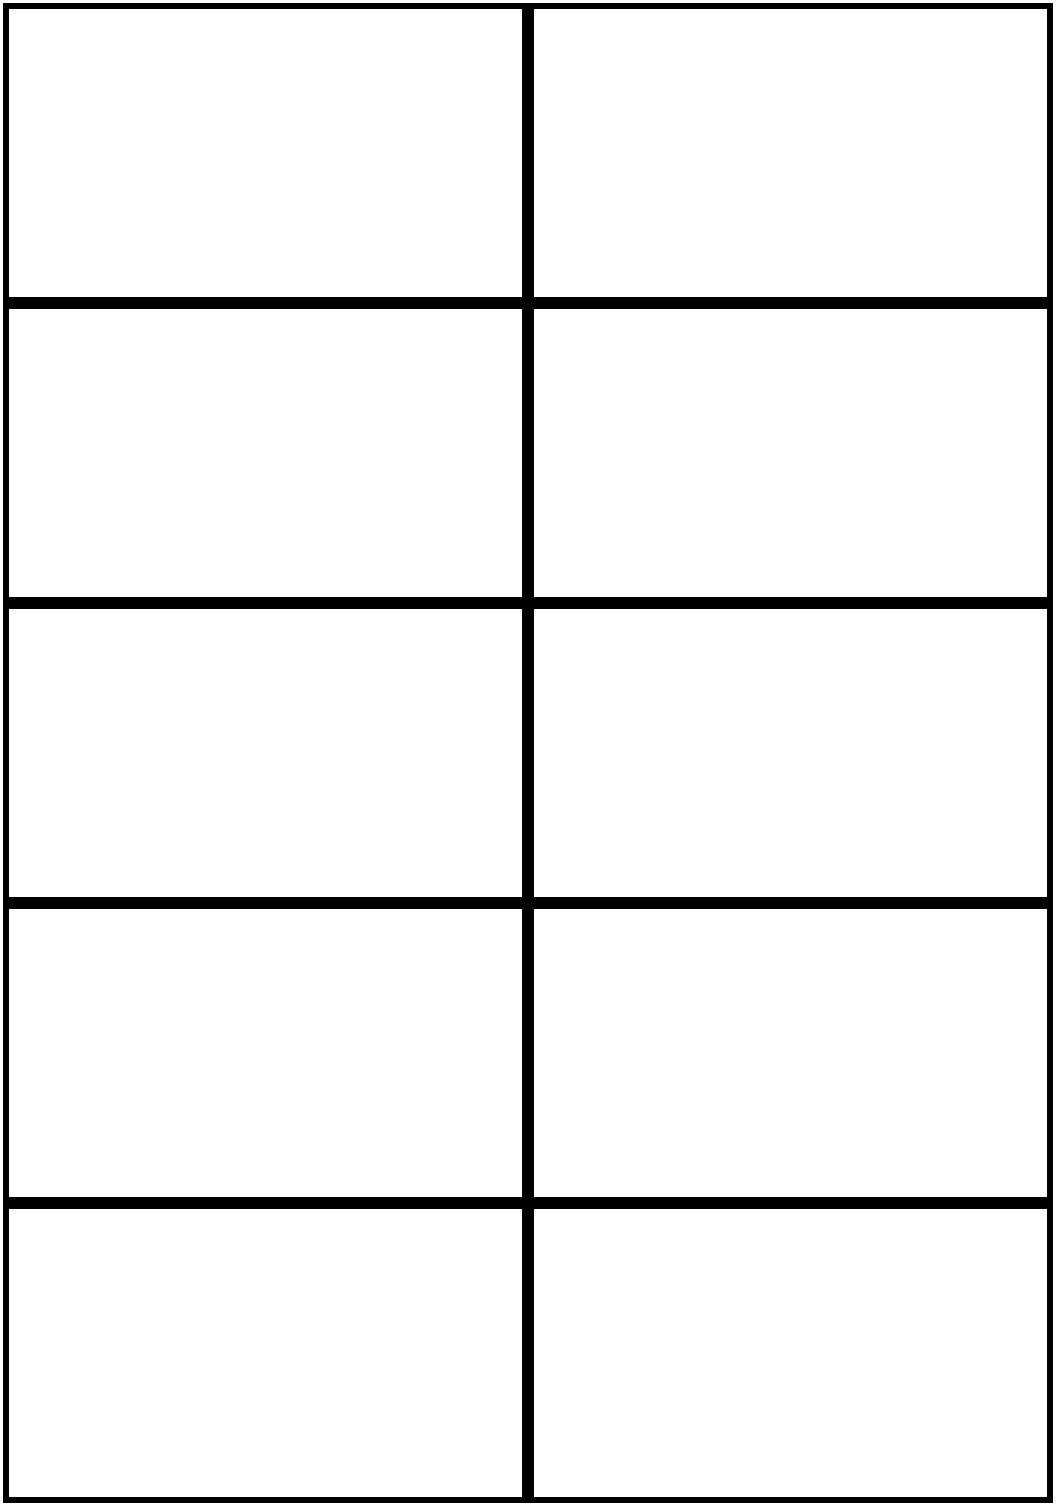 Image Result For Flashcards Template Word  Worksheets  Free Inside Template For Cards In Word